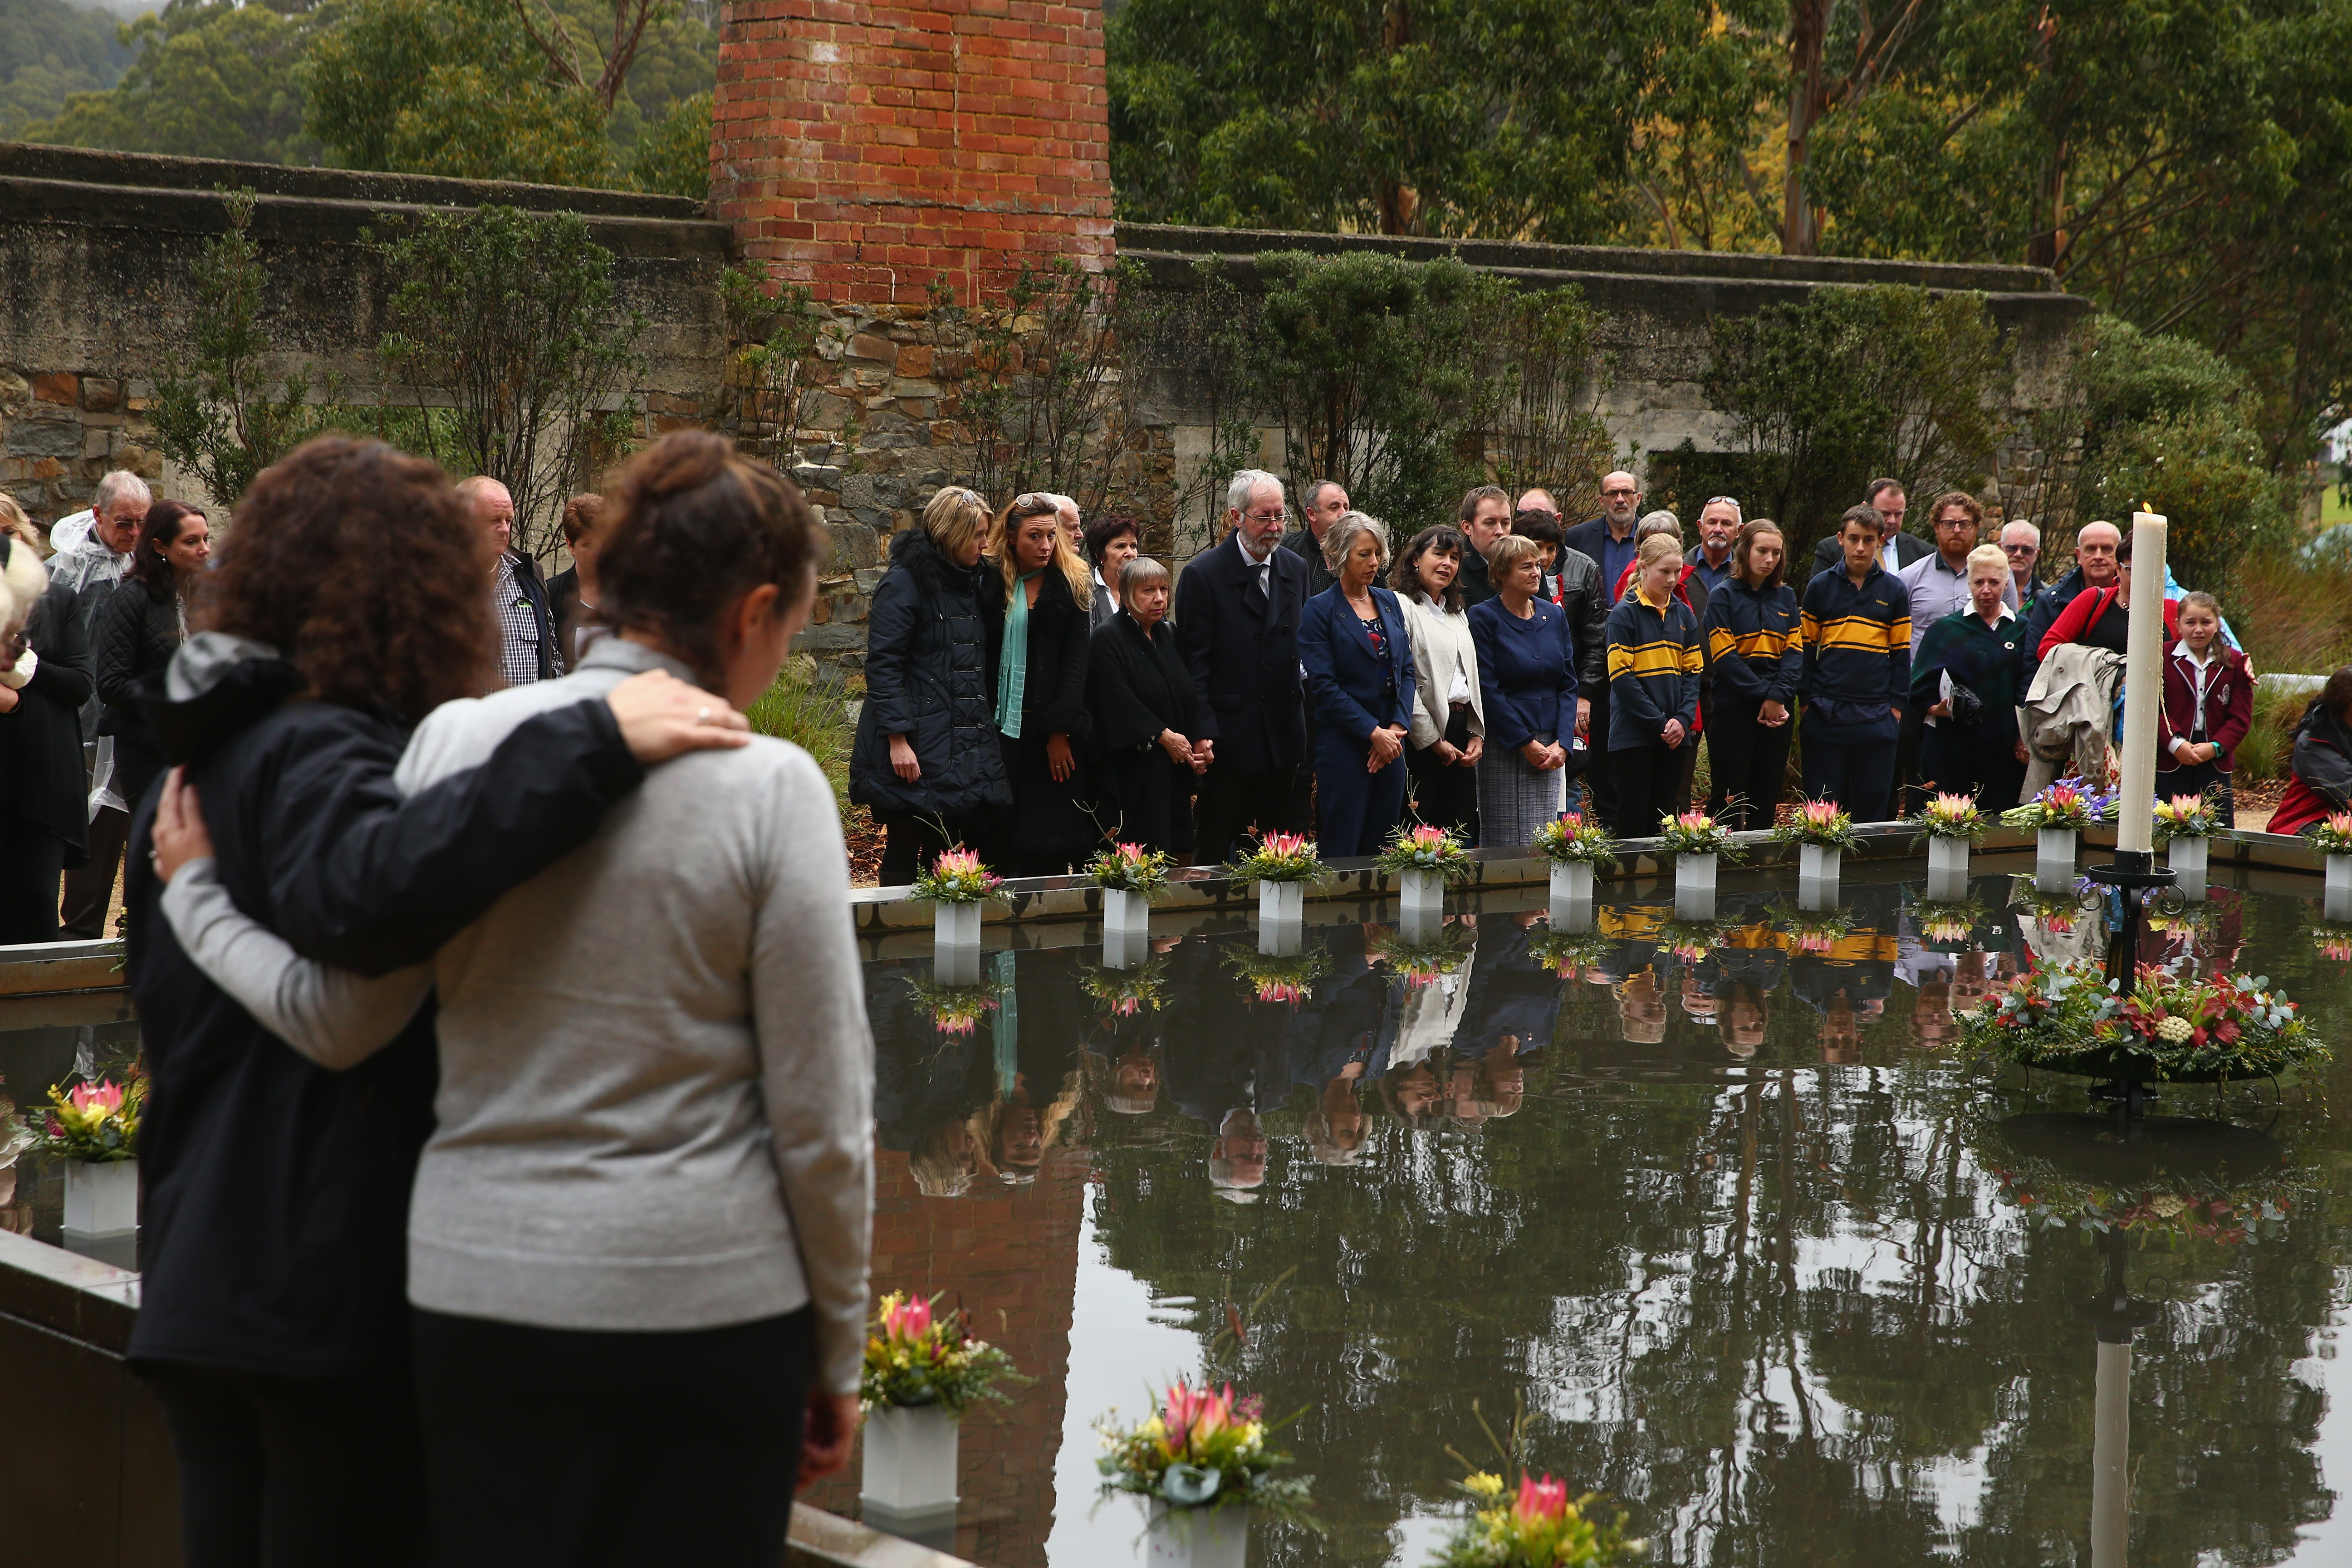 Family and community members lay 35 floral tributes in the Memorial Pool to remember the victims during the 20th anniversary commemoration service of the Port Arthur massacre on April 28, 2016, in Port Arthur, Australia. The historic town became infamous on April 28, 1996, when Martin Bryant began shooting indiscriminately with a high-powered rifle on people visiting the site. 35 people were killed and a further 23 were injured in what remains the world's worst massacre by a lone gunman. The tragedy transformed gun legislation in Australia, with then- Prime Minister John Howard introducing the National Firearms Agreement, banning all semi-automatic rifles and all semi-automatic and pump-action shotguns and introducing stricter licensing and ownership controls. (Source: Robert Cianflone/Getty Images)